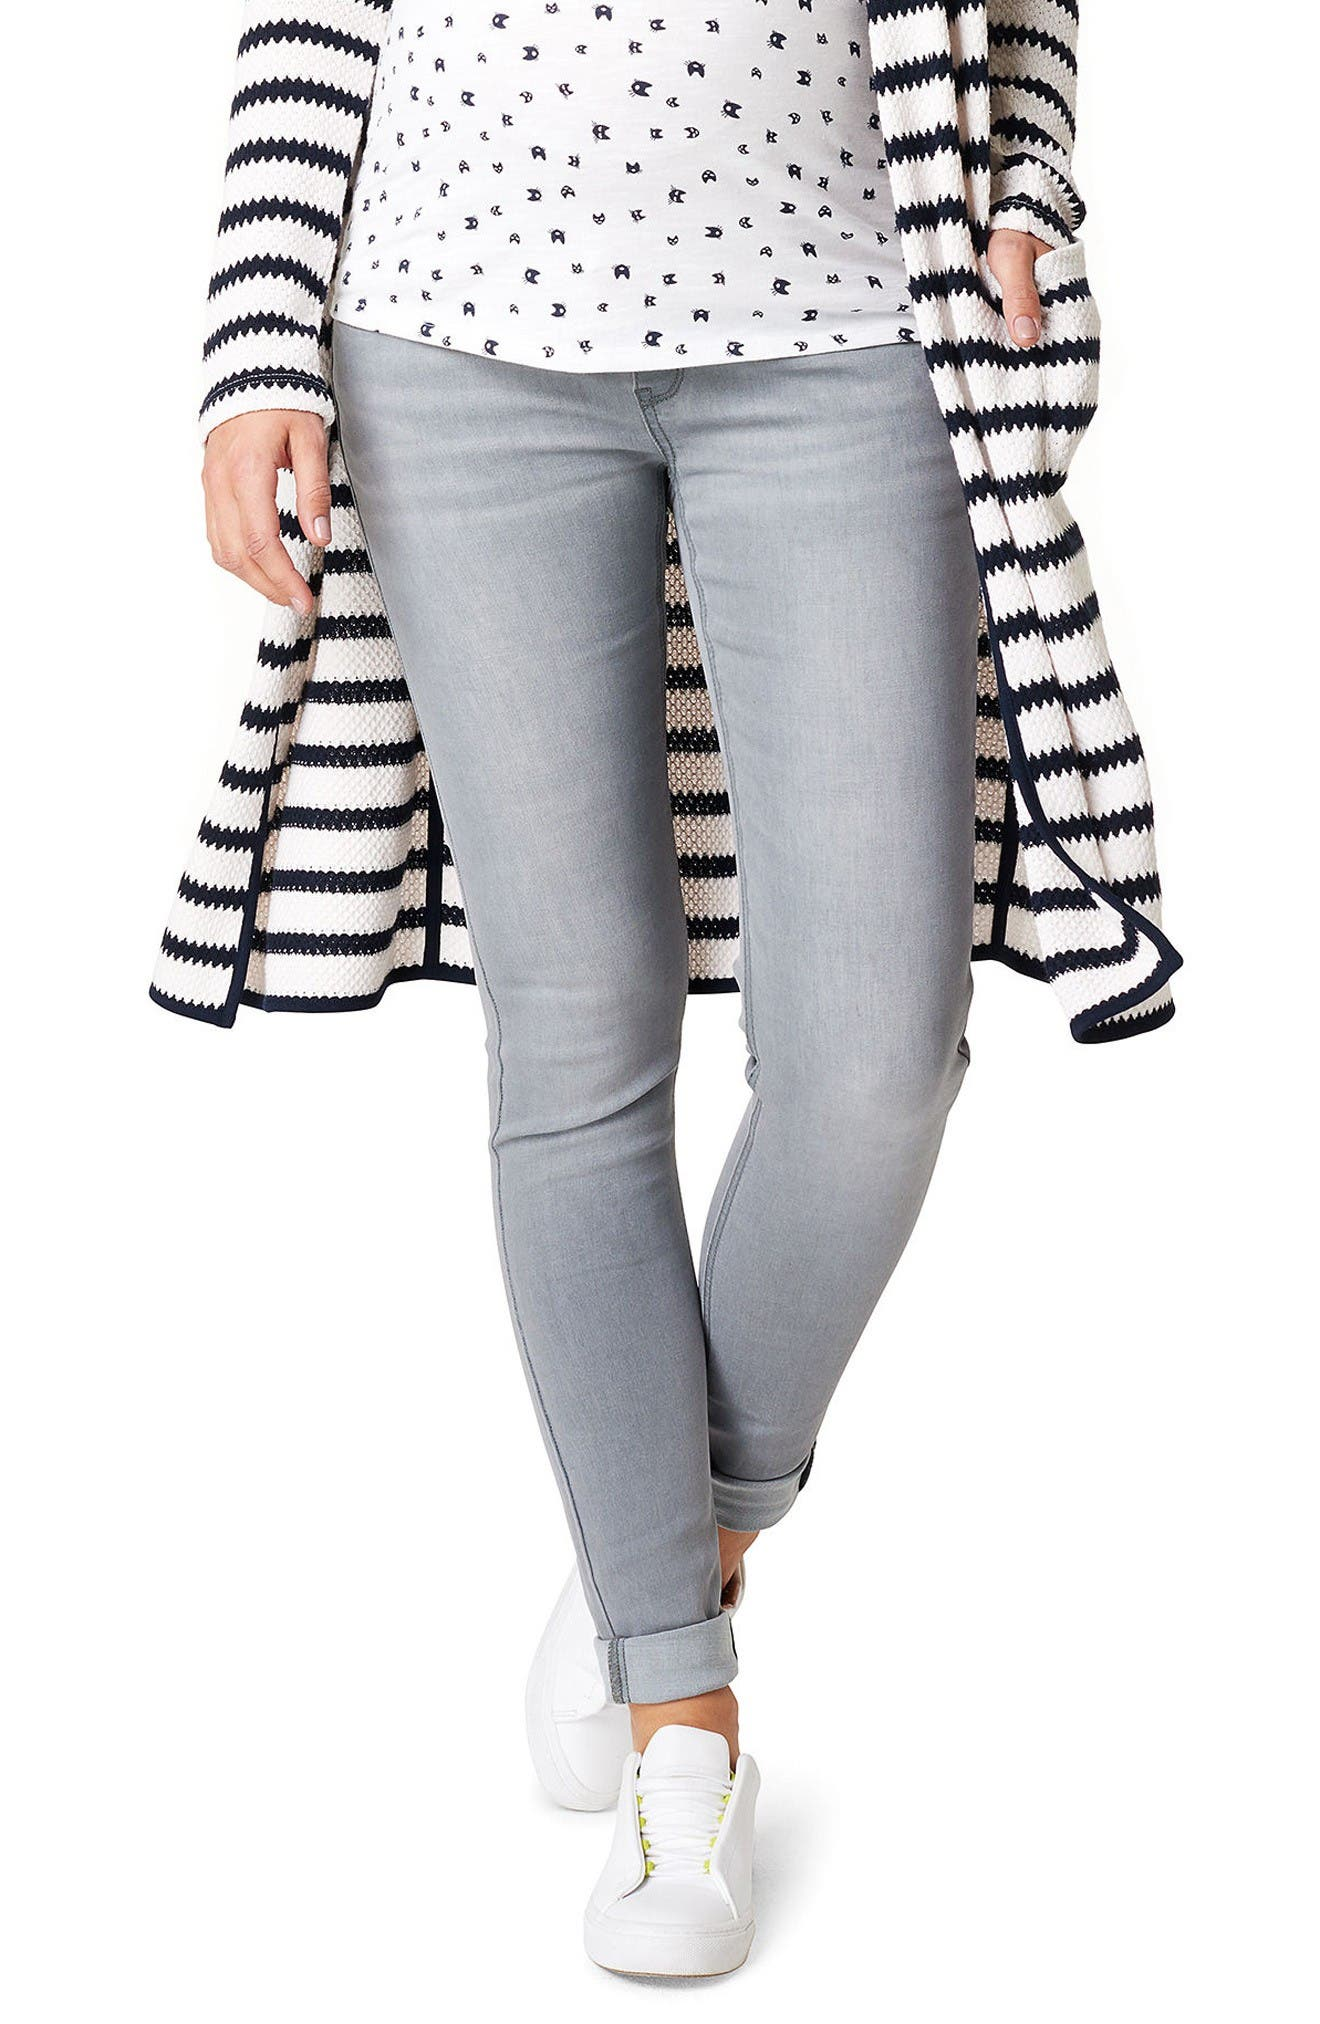 Main Image - Noppies Iva Skinny Maternity Jeans